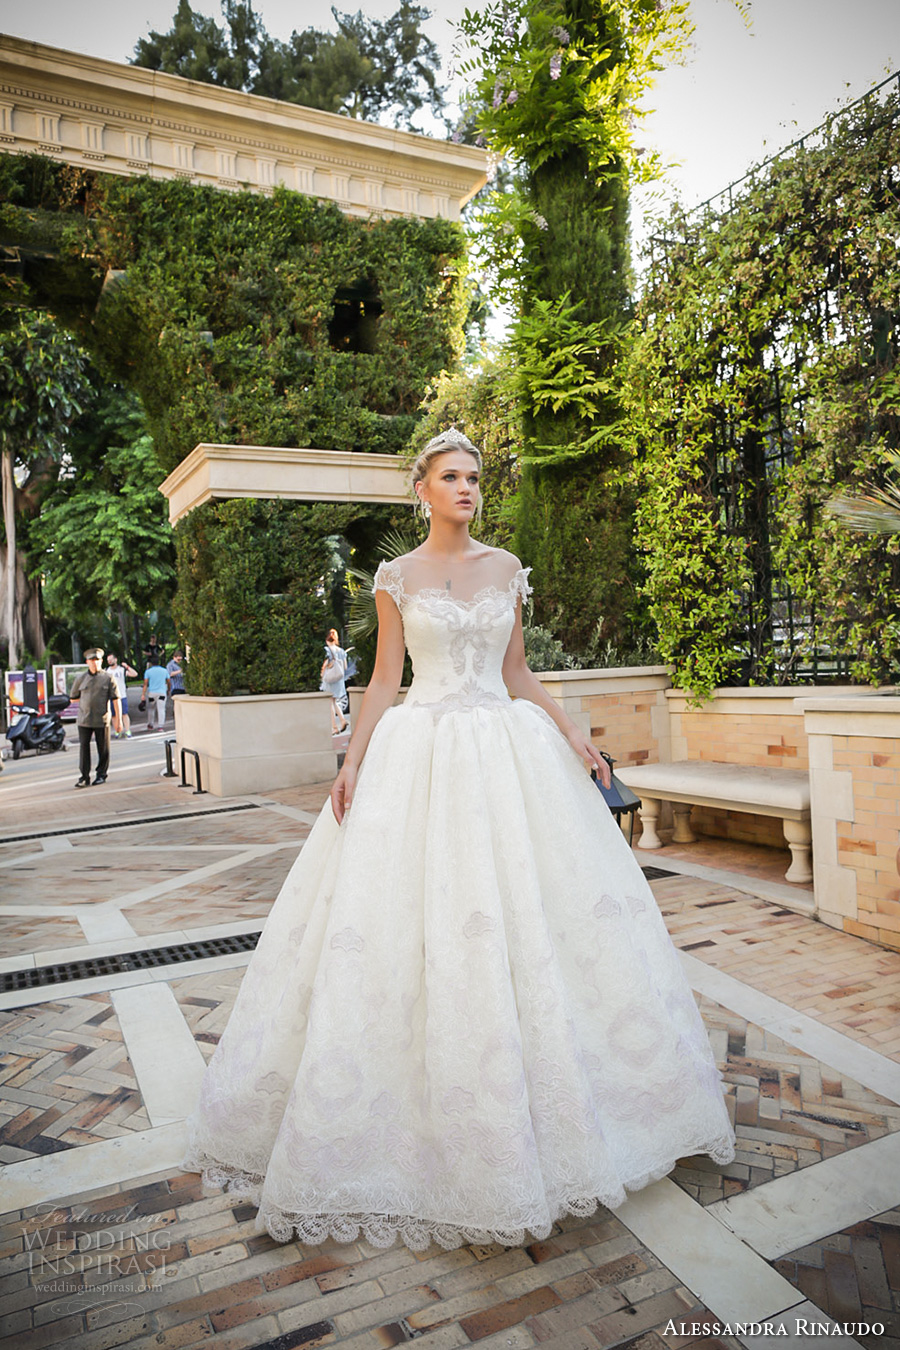 Alessandra rinaudo bridal couture 2017 wedding dresses for A princess bride couture bridal salon